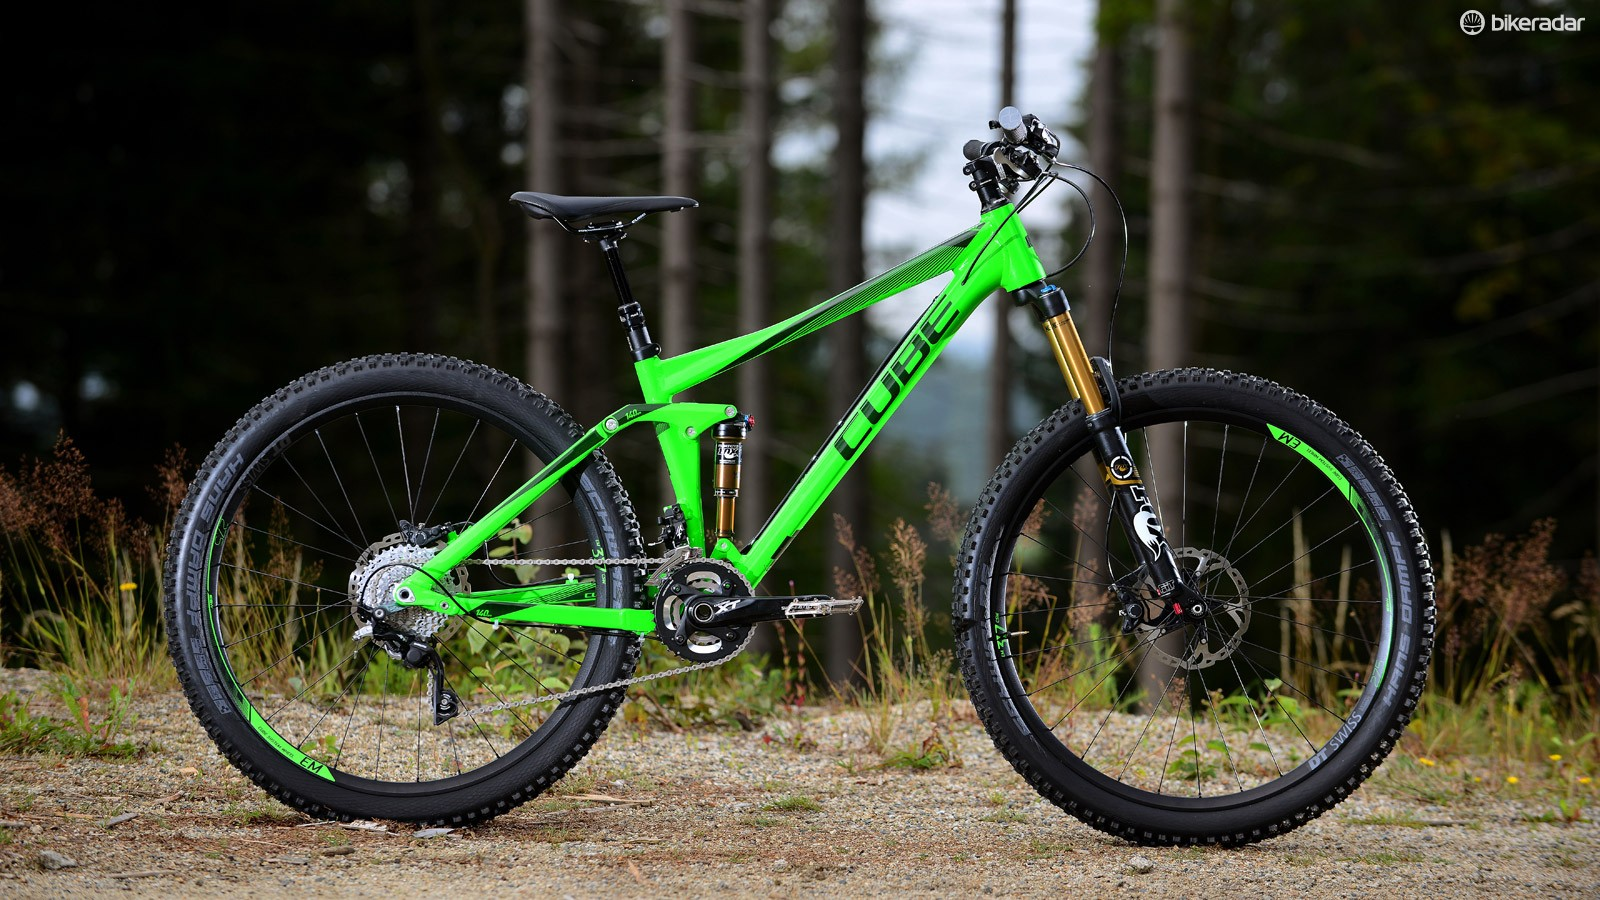 The 140mm travel 650b Stereo shown in another HPA (High Performance Aluminium) guise. This is the bike we rode, smashing it down a German downhill track for the day, testing just how far we could push the 140mm of travel